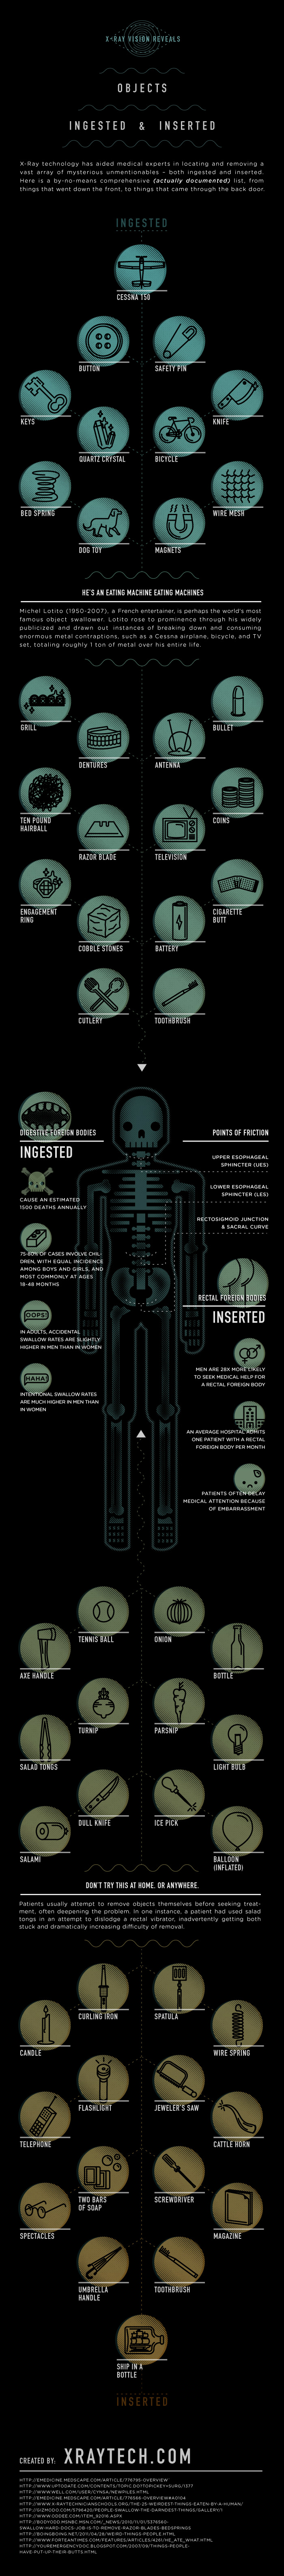 Objects Ingested and Inserted Infographic